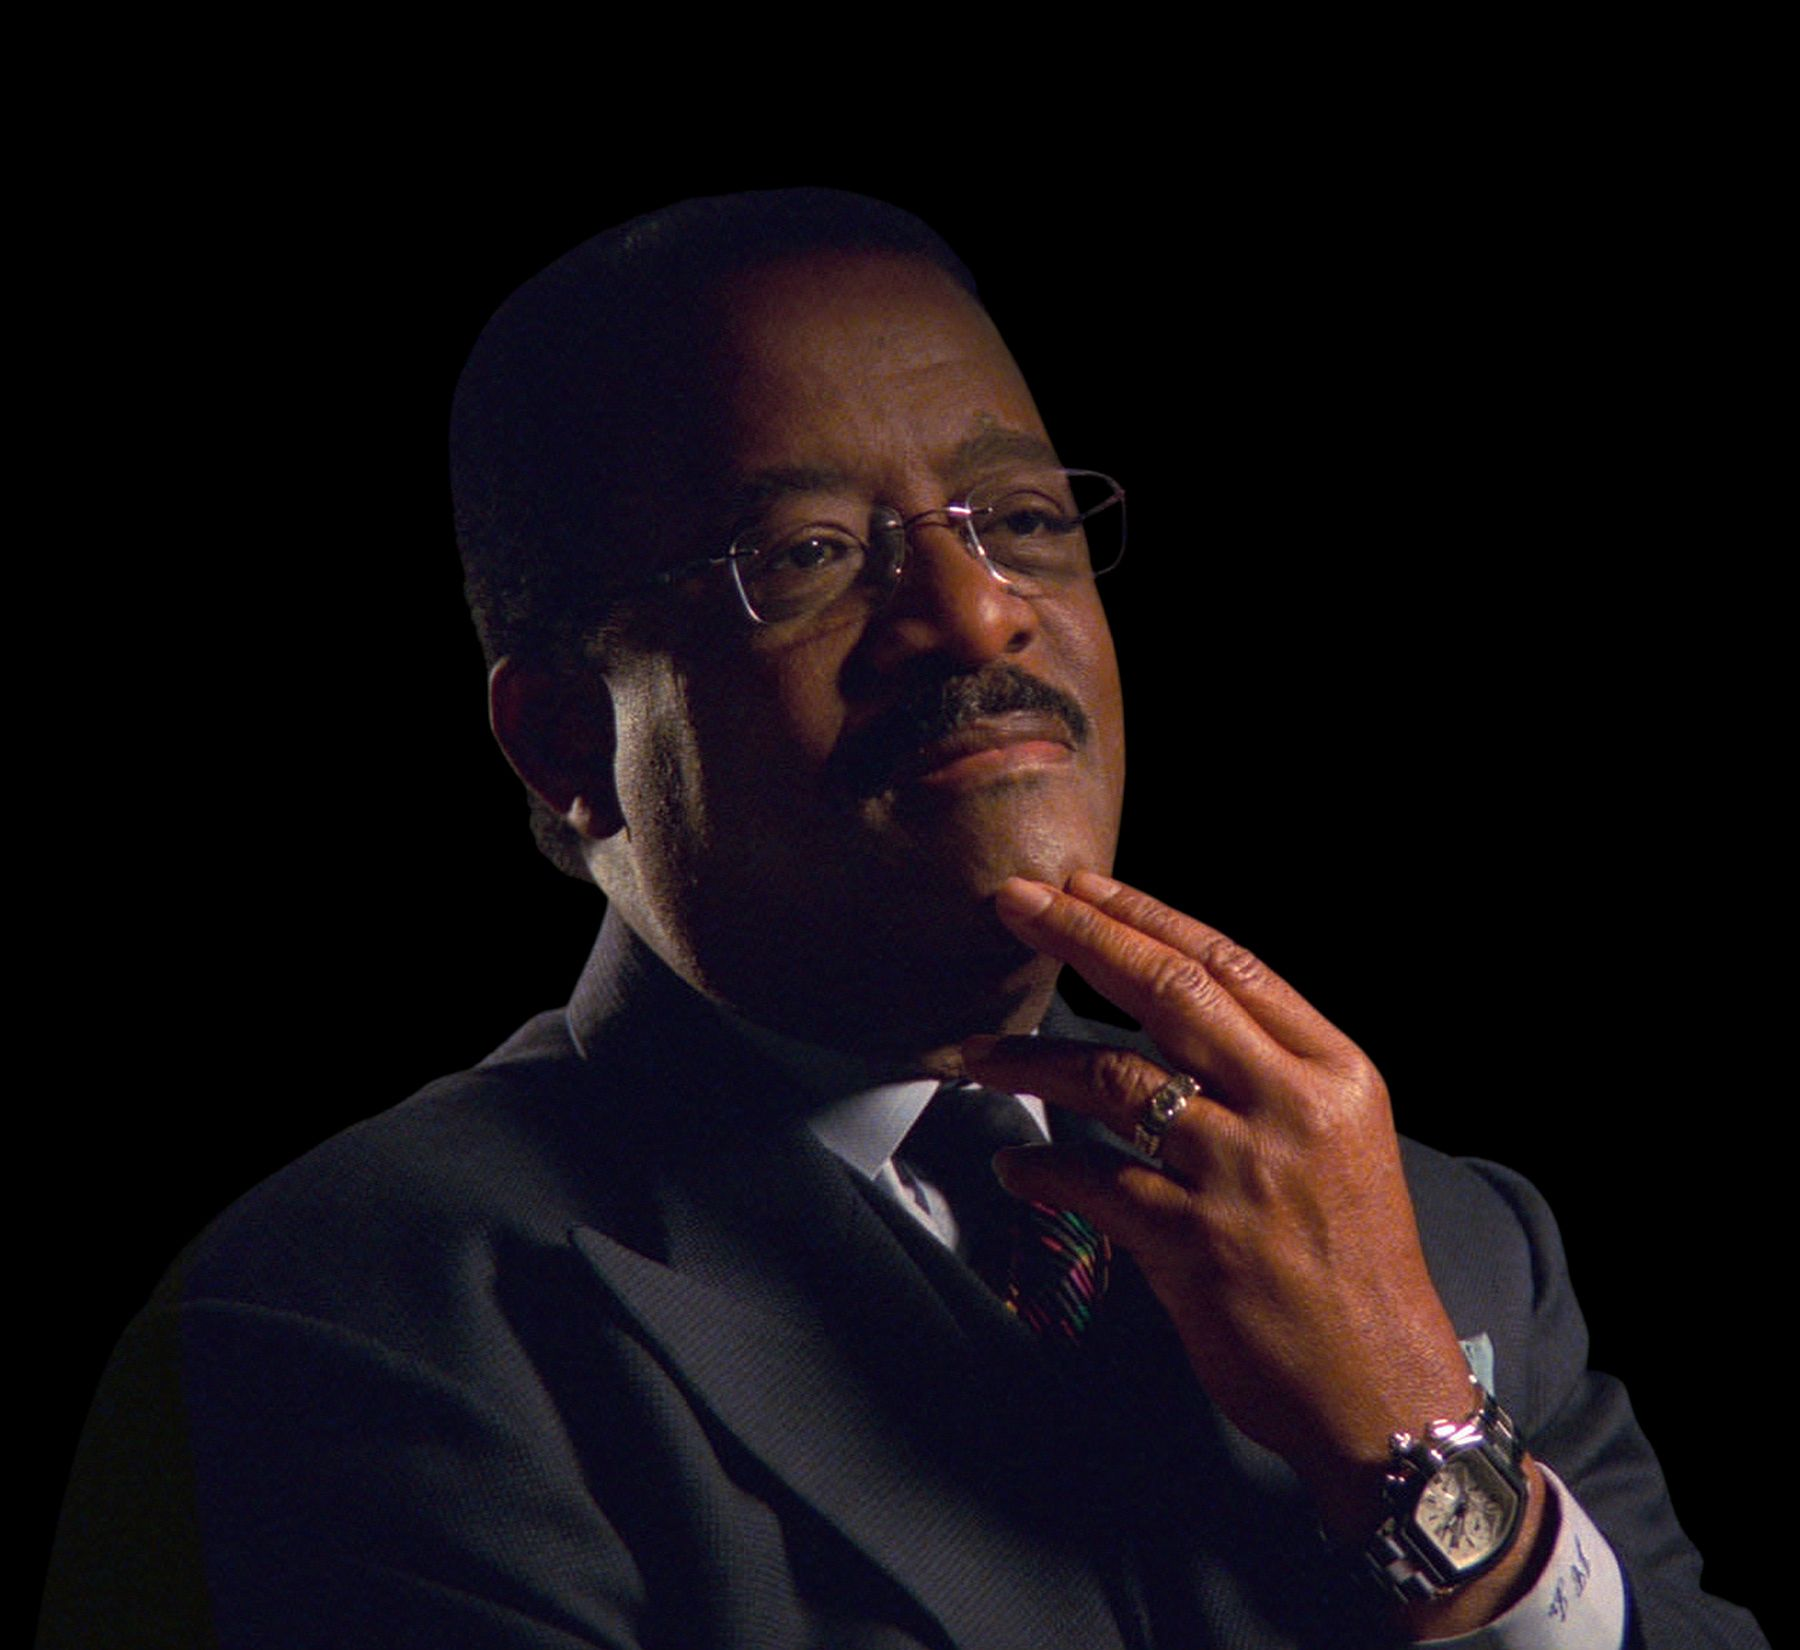 It was Johnnie Cochran's dream to bring justice to all Americans who suffer because of the wrongdoing of individuals, corporations or governmental entities.